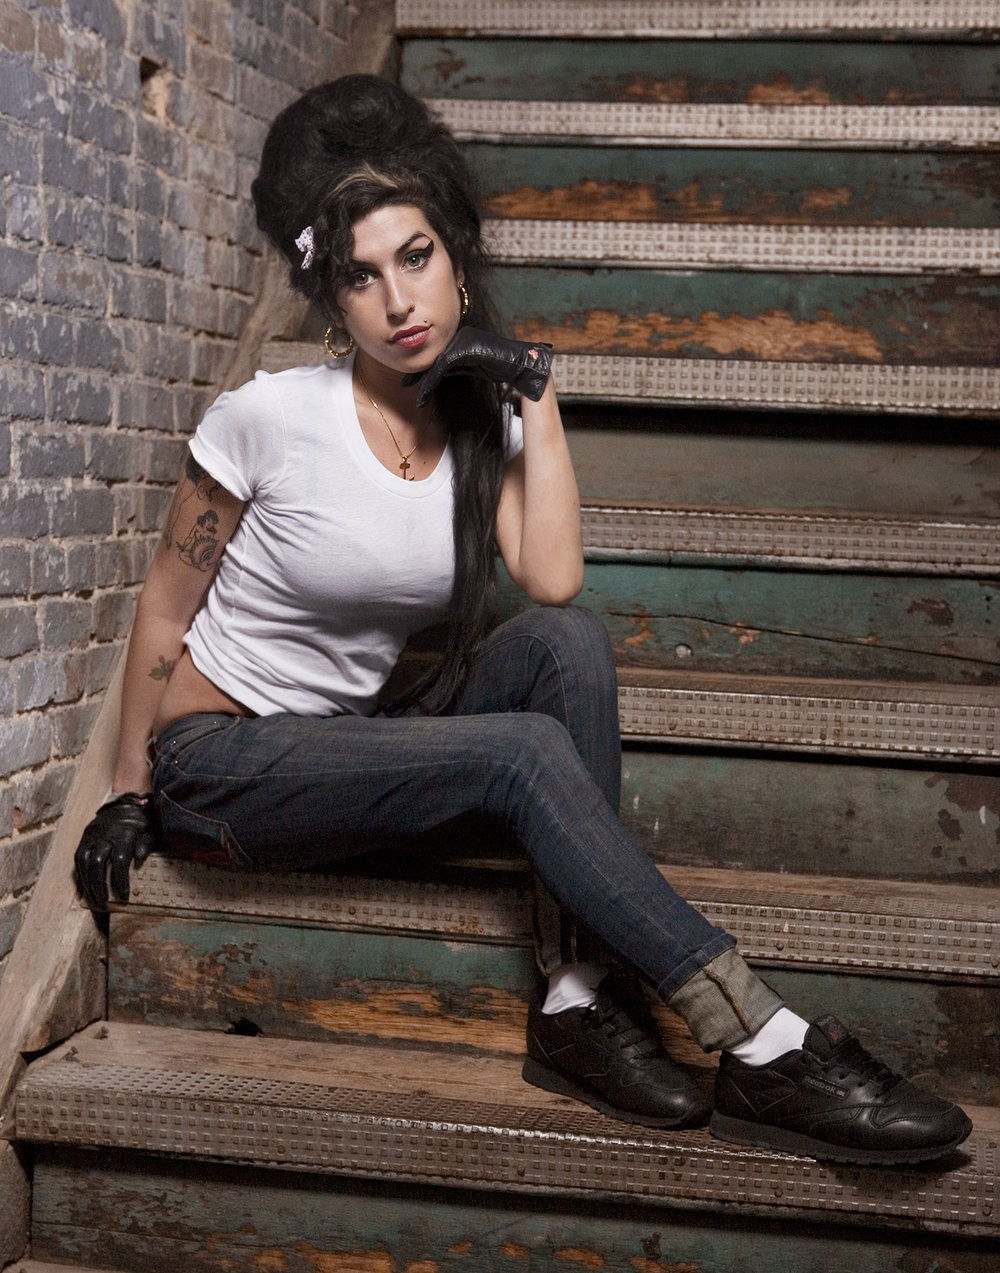 Amy_Winehouse_Stairs_1500.jpg